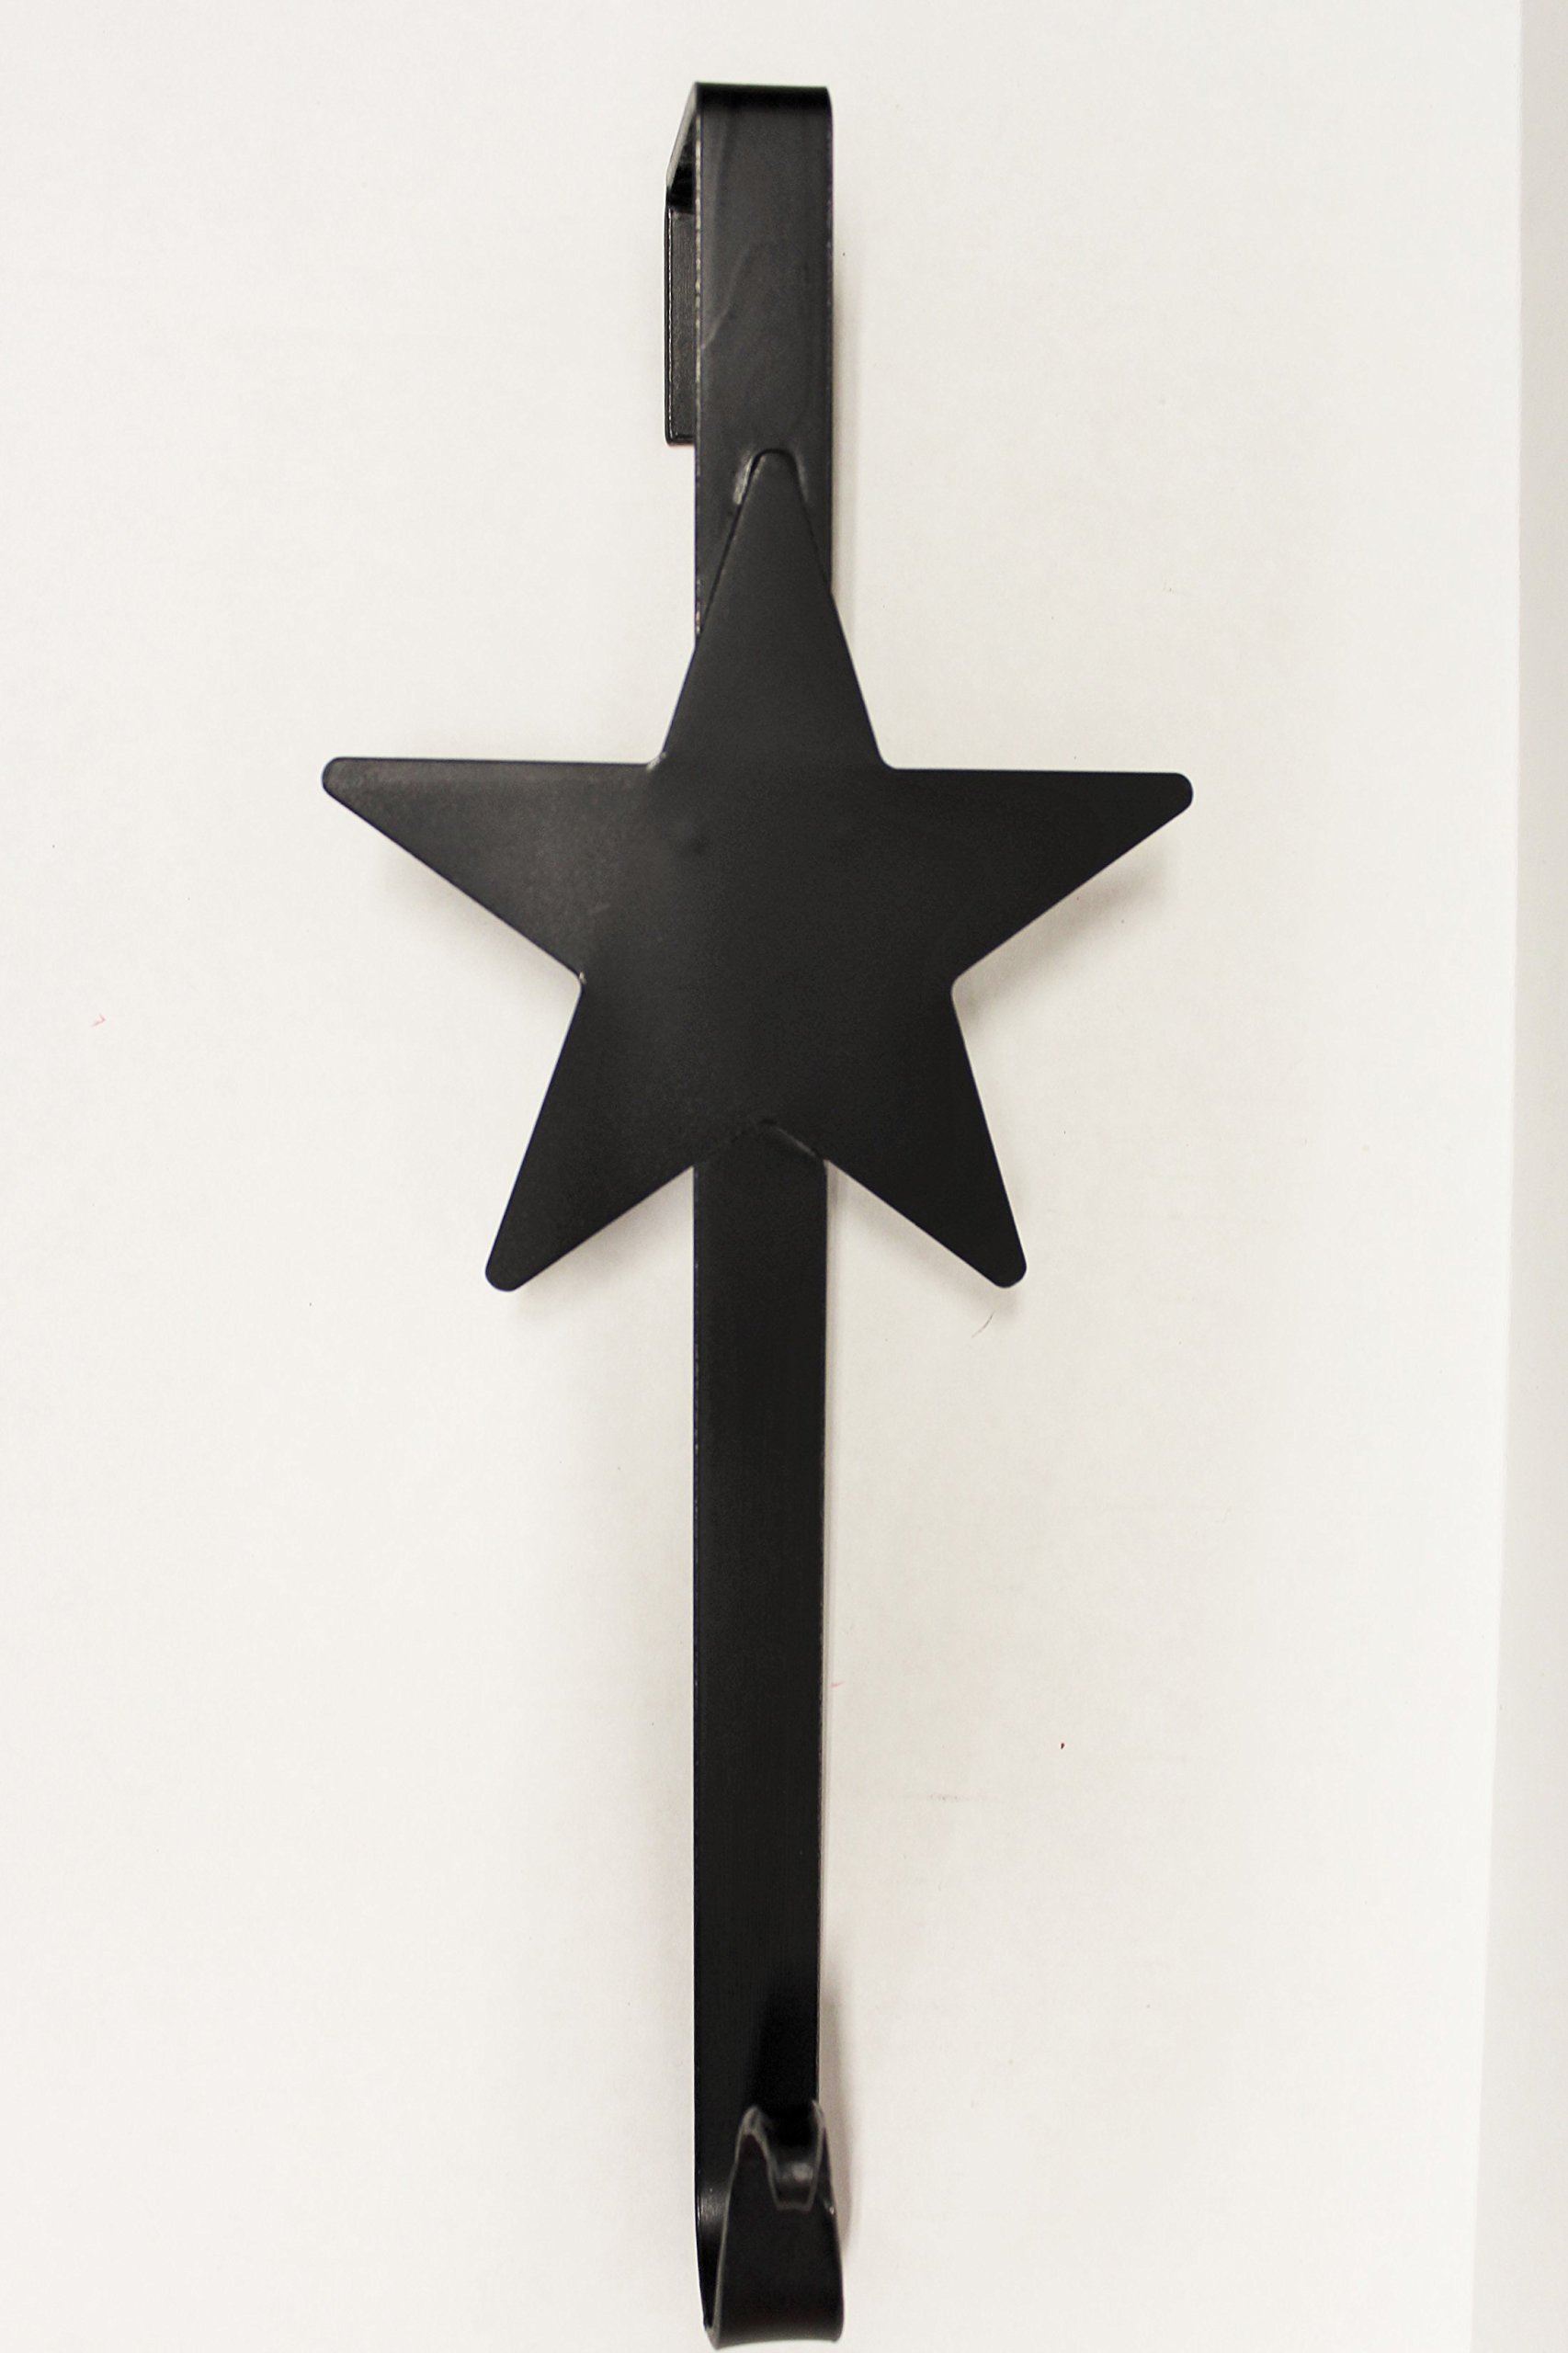 Wrought Iron Star Wreath Hanger - Hand Made By Amish by Hand Crafted & American Made!